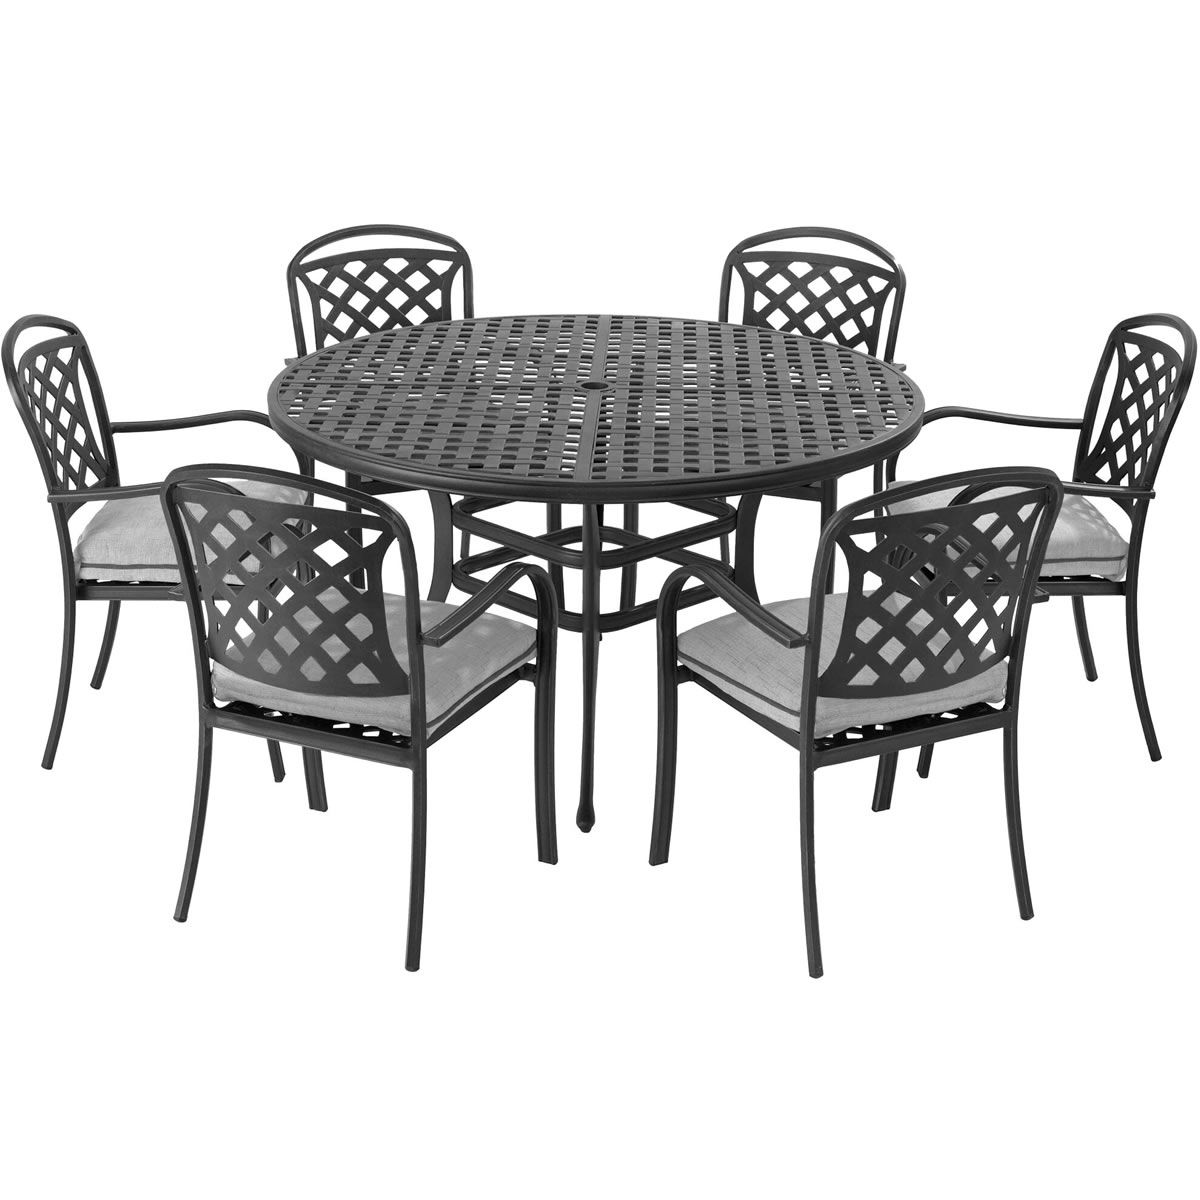 find this pin and more on new house gardenexterior part of our extensive range the hartman berkeley 6 seater round furniture